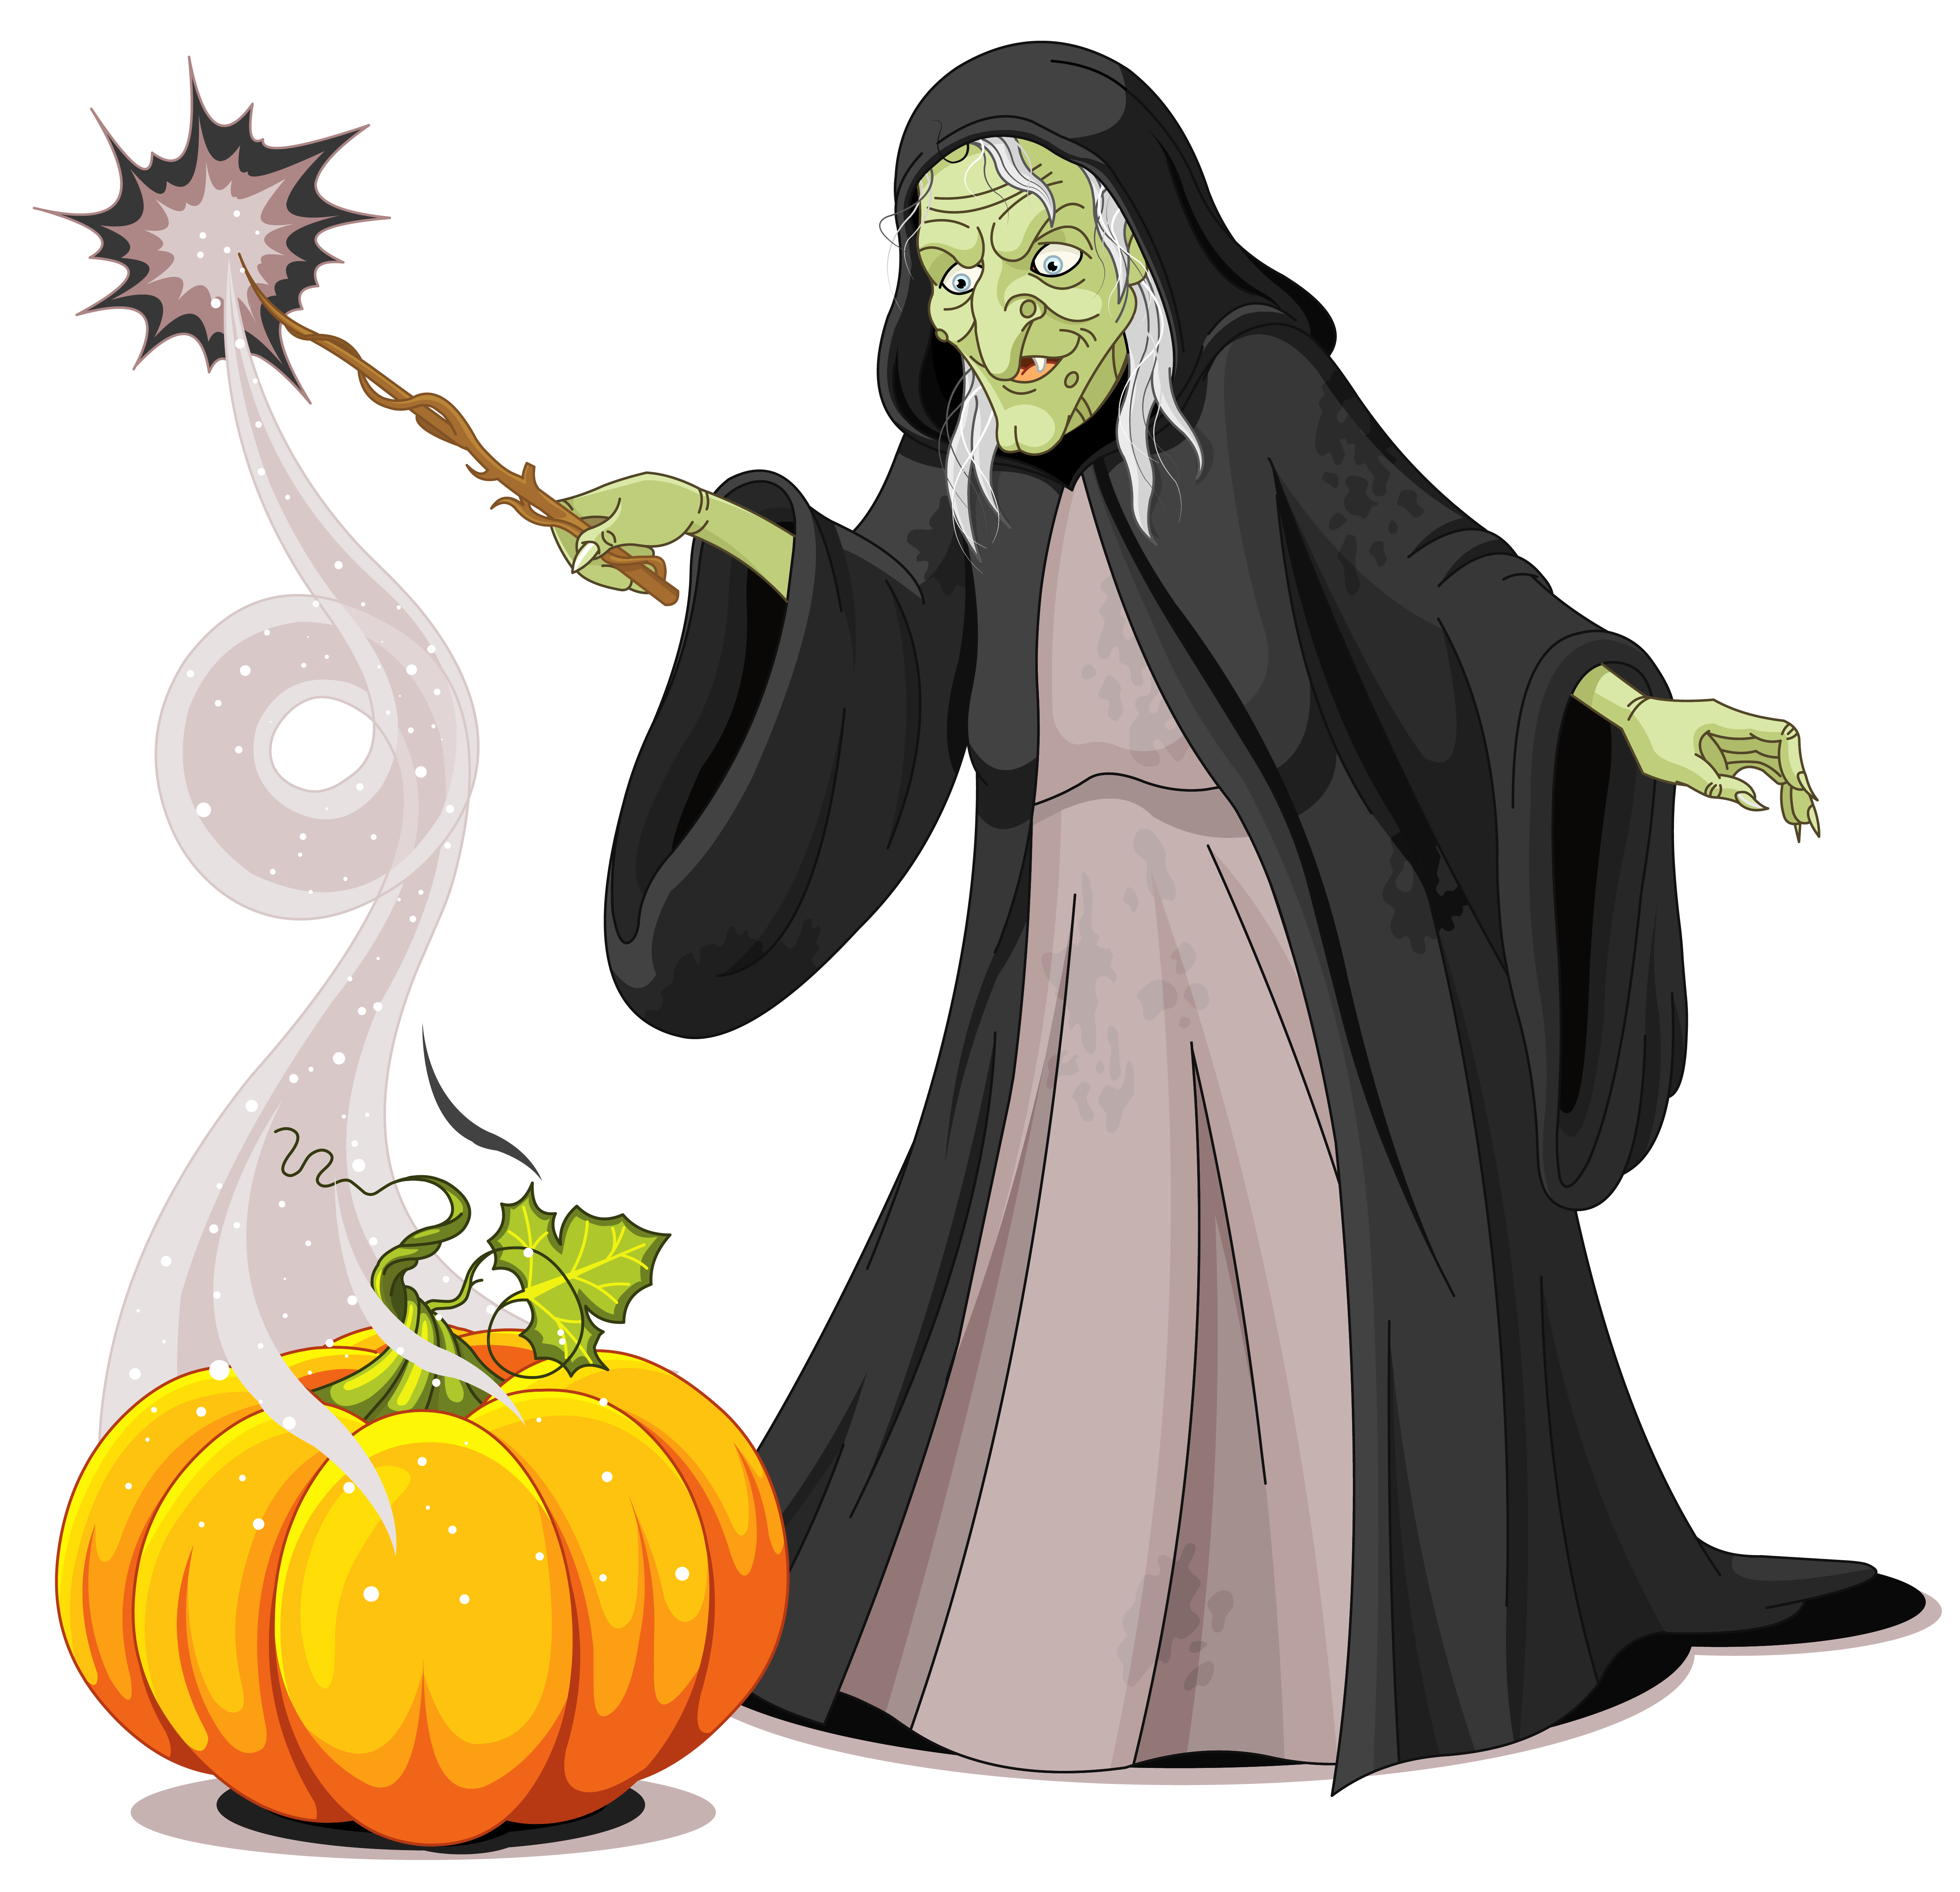 5388x5200 Halloween Creepy Witch Png Pictureu200b Gallery Yopriceville